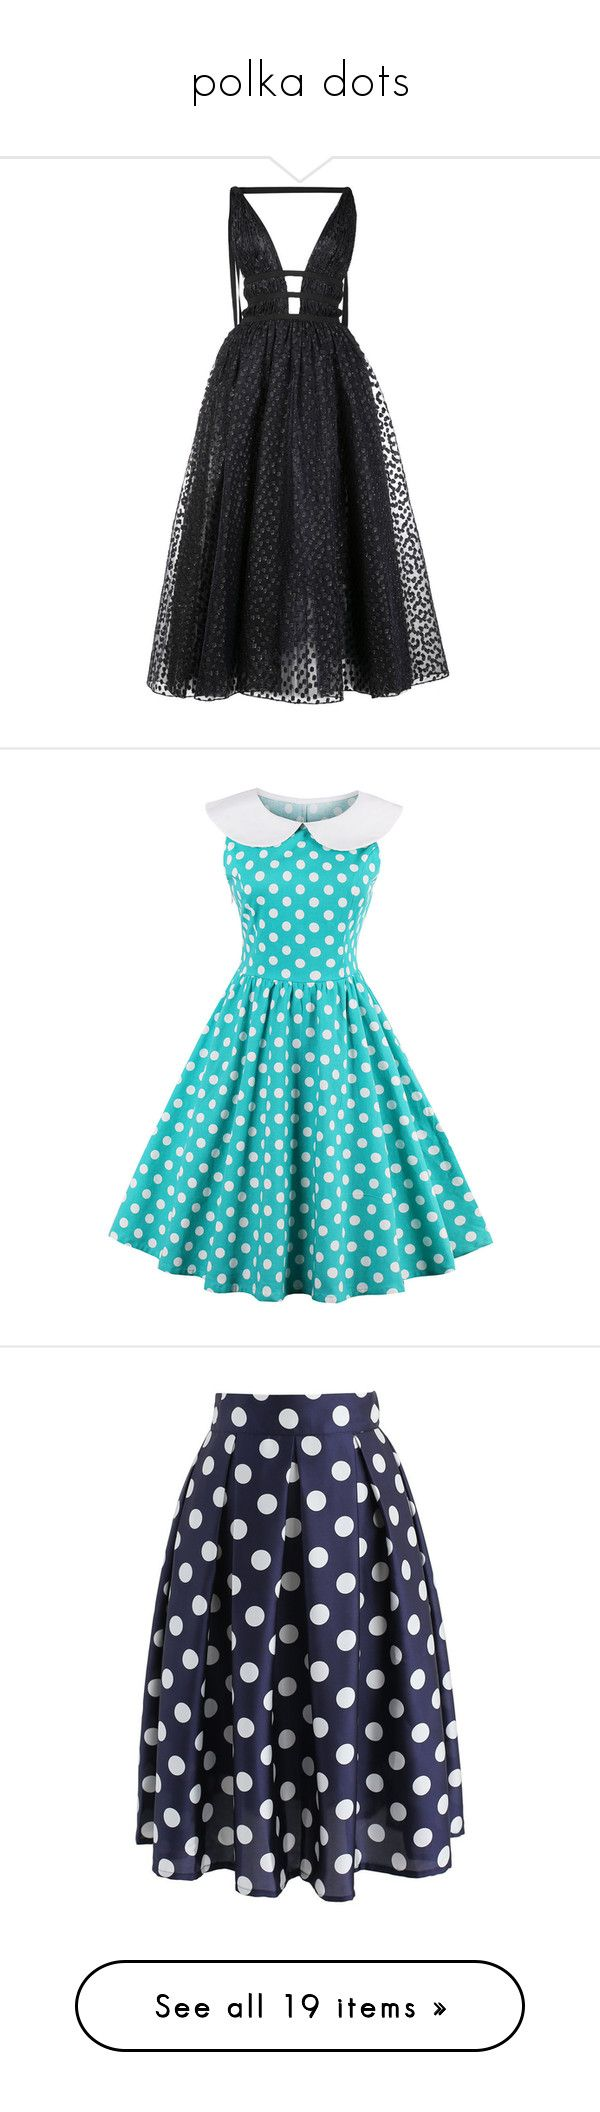 """polka dots"" by peeweevaaz ❤ liked on Polyvore featuring dresses, gowns, vestidos, long dresses, carolina herrera, black, open back long dresses, midi dresses, cutout dresses and sleeveless midi dress"